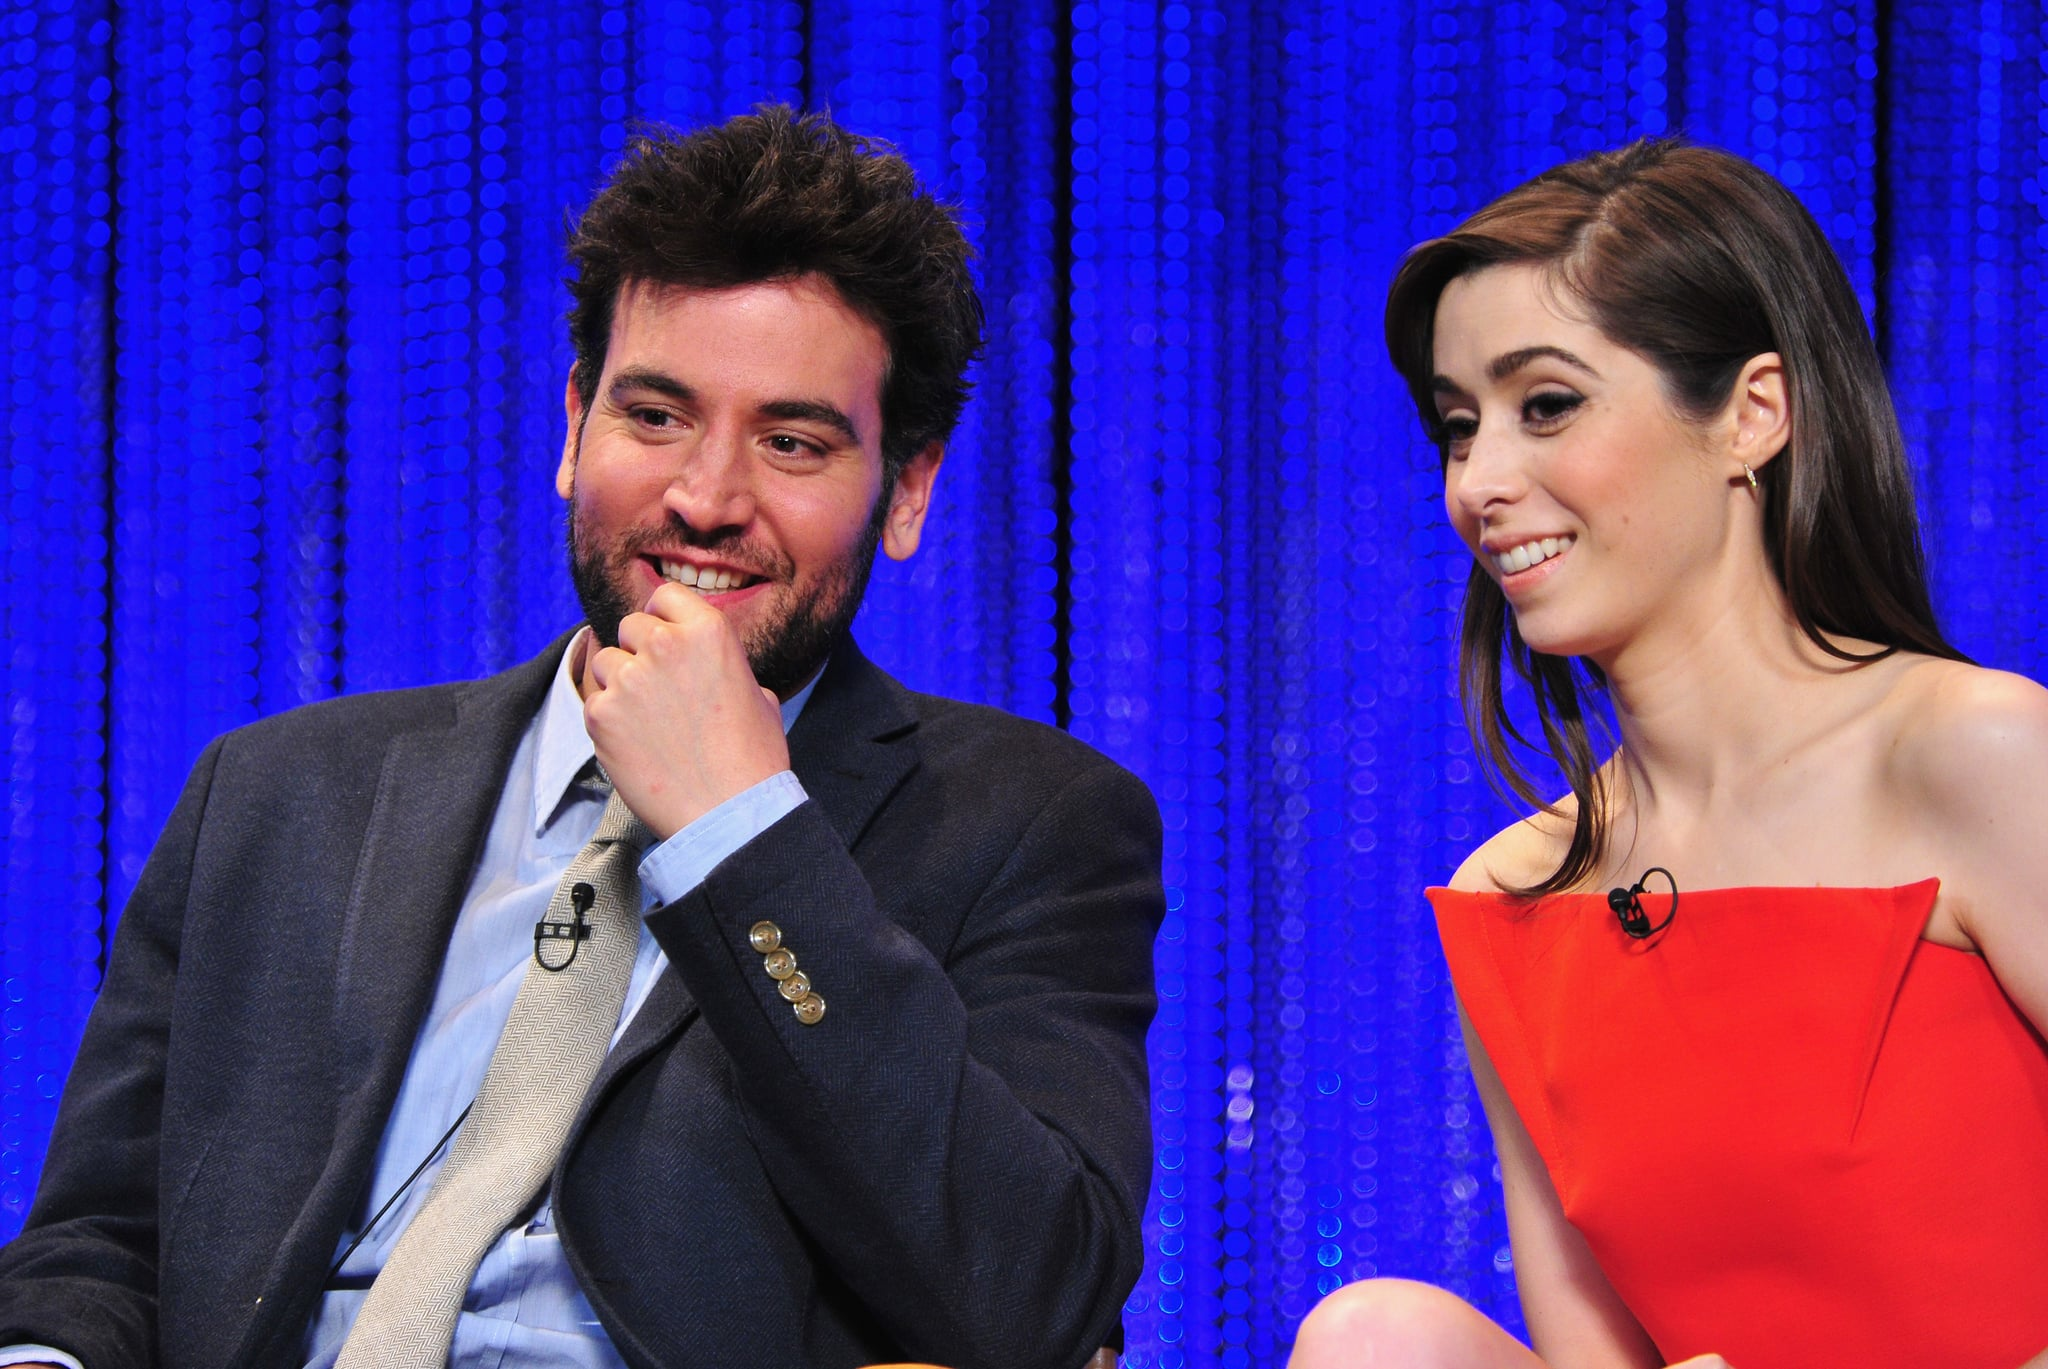 Josh Radnor and Cristin Milioti sat next to each other at the How I Met Your Mother event.